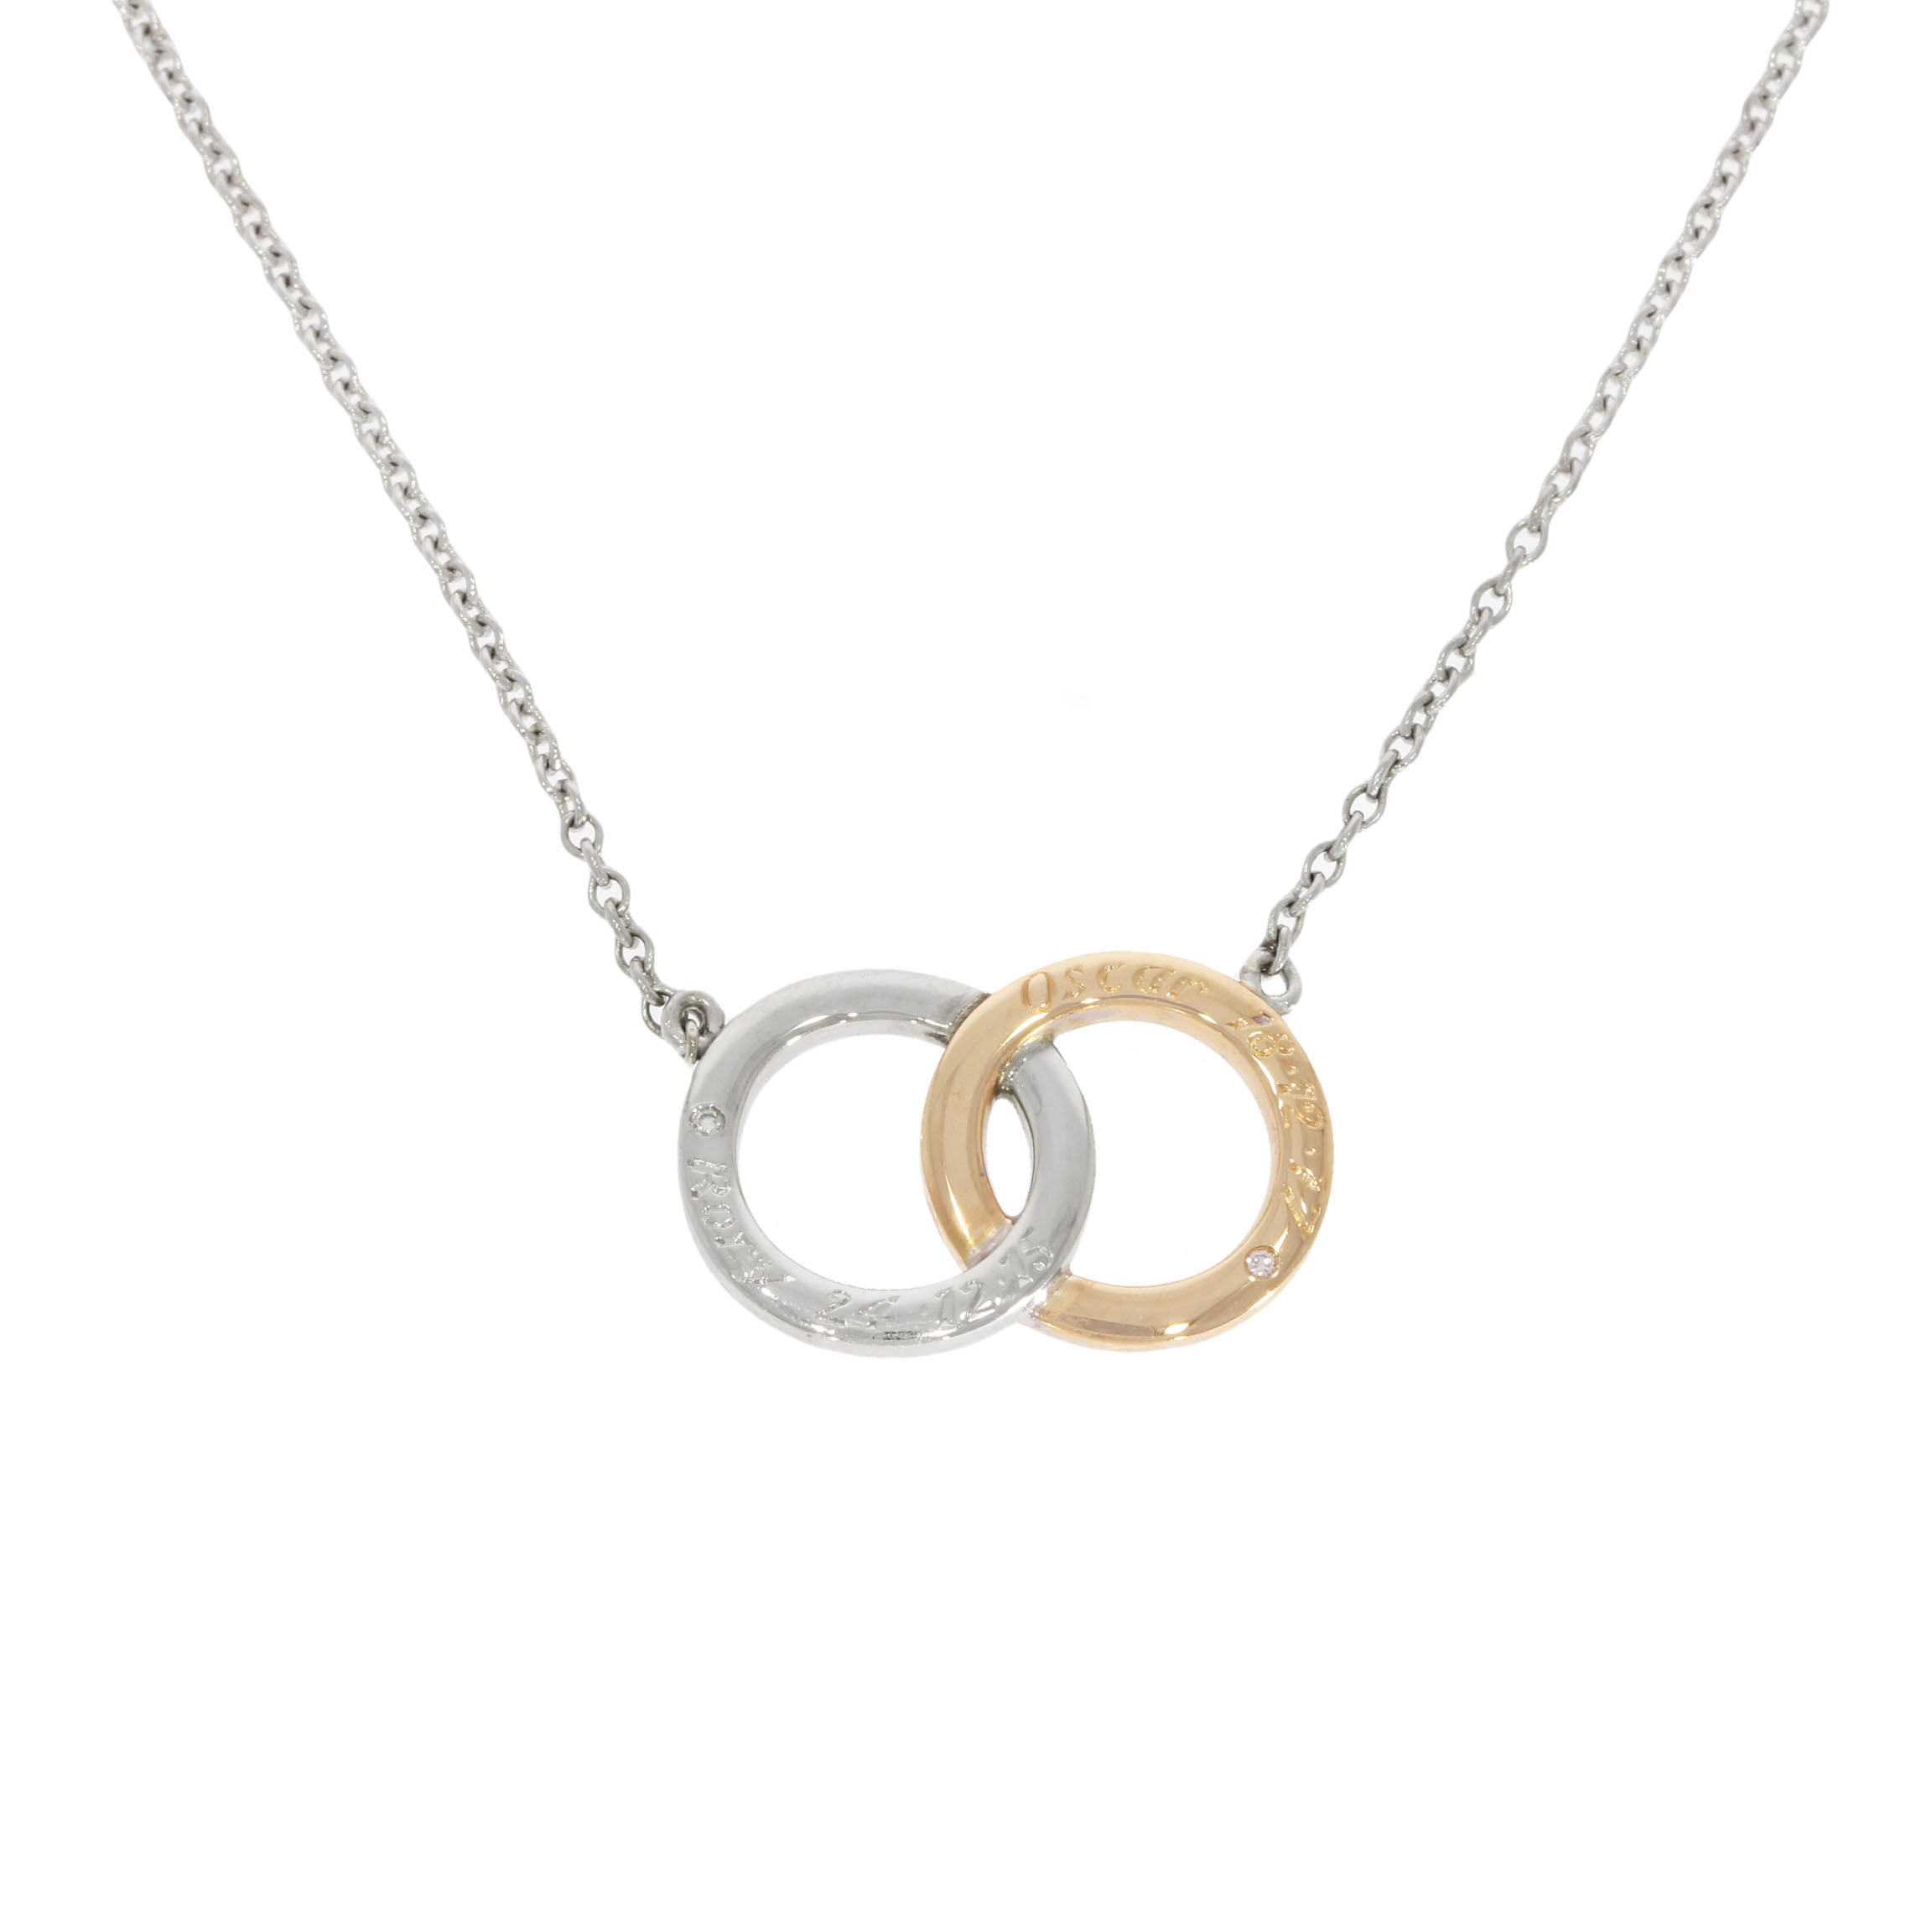 White & Yellow Gold Engraved Birthstone Necklace